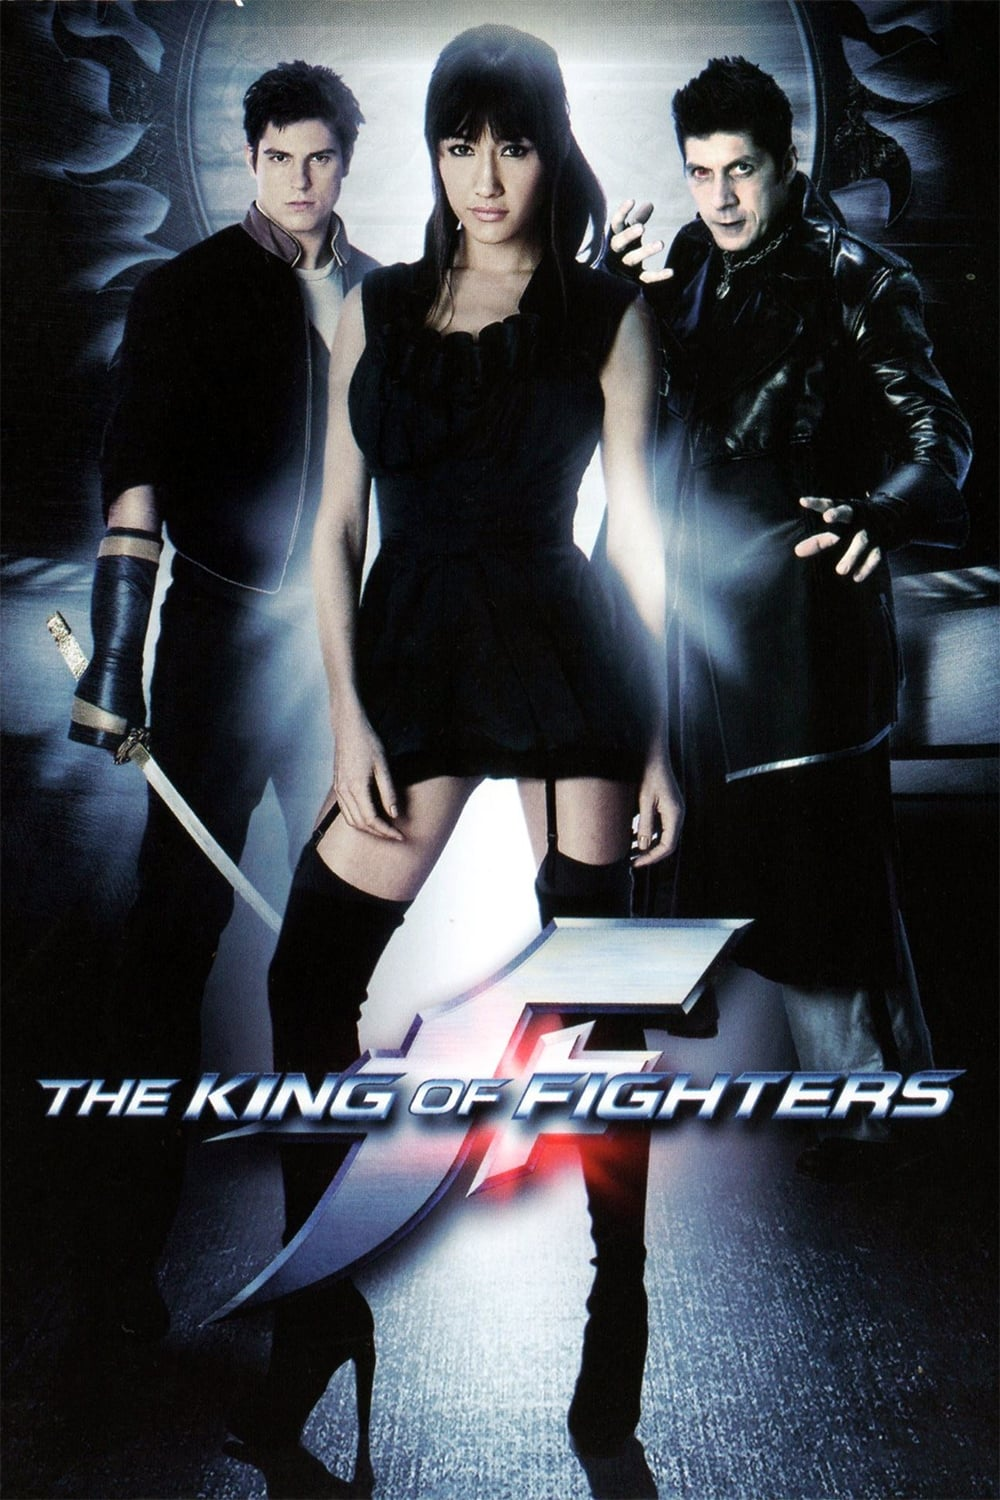 The King of Fighters, 2009